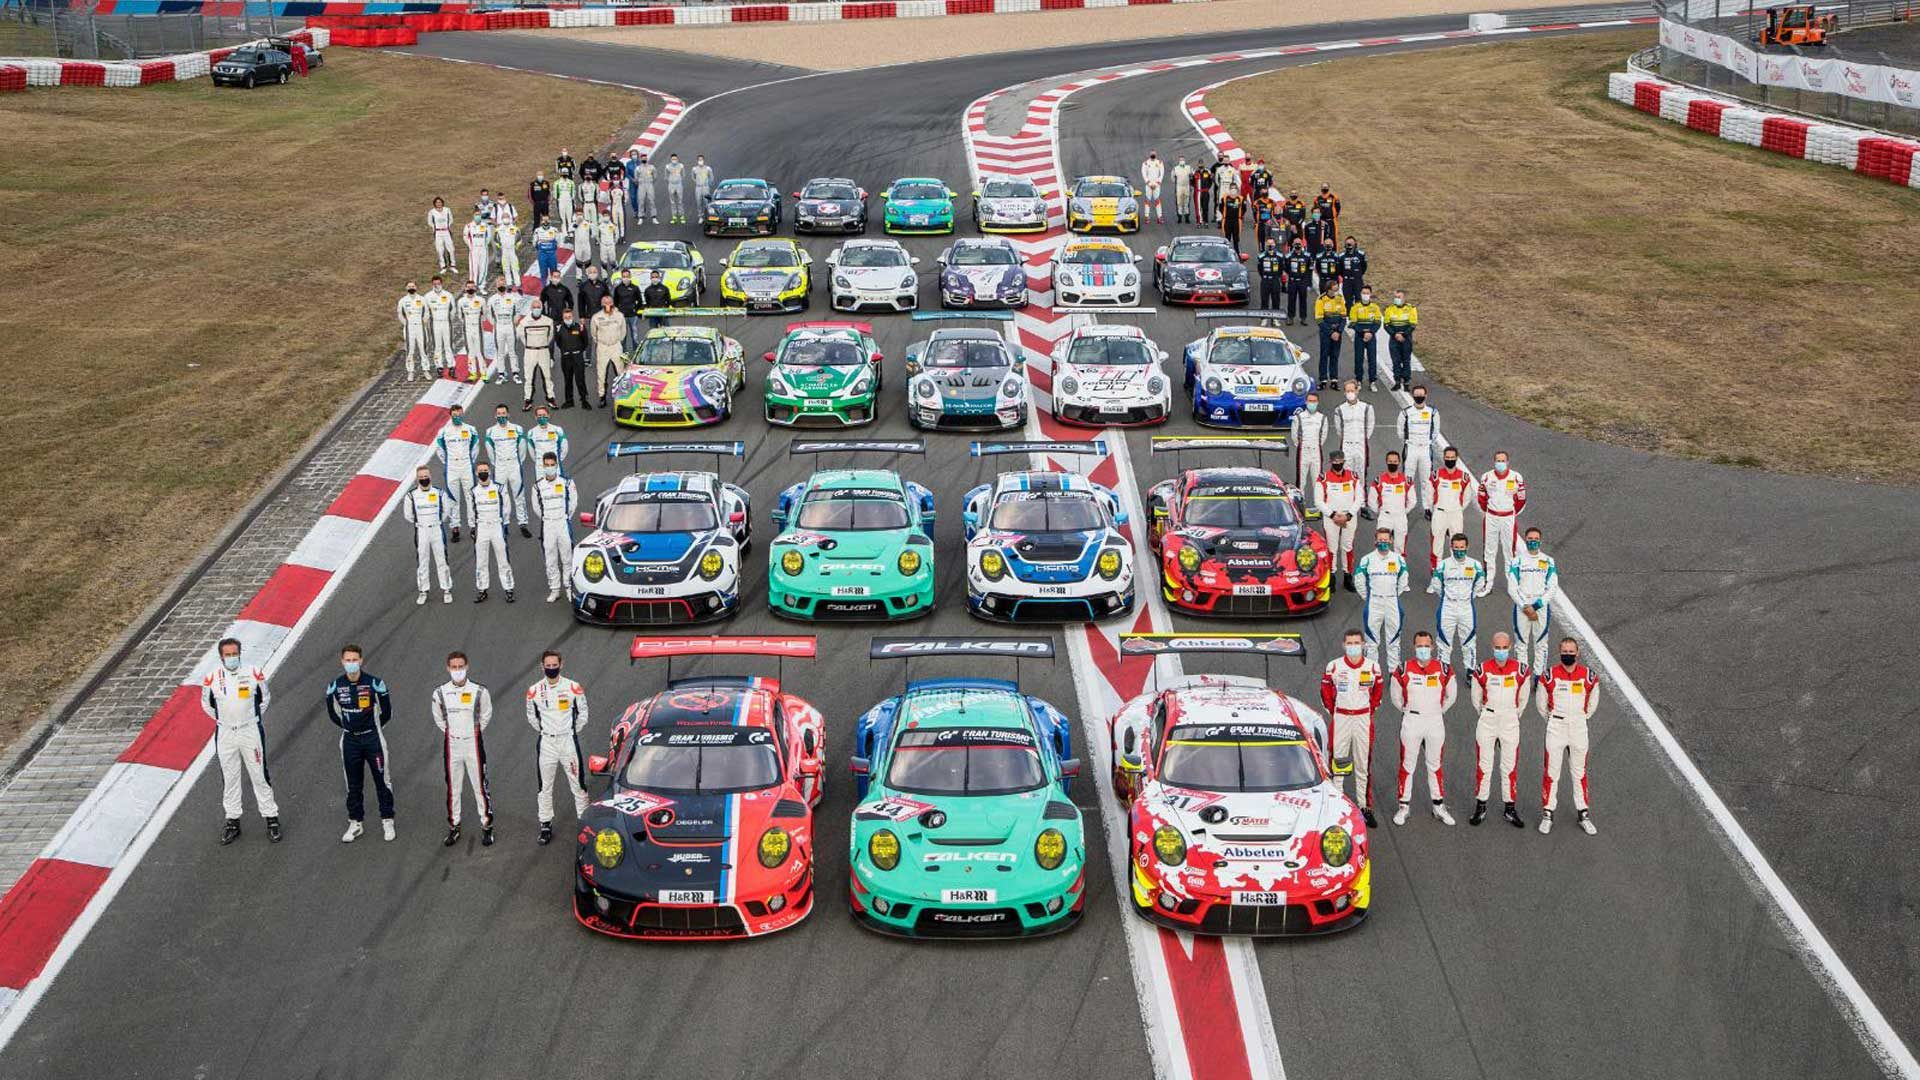 Porsche racers back from retirement